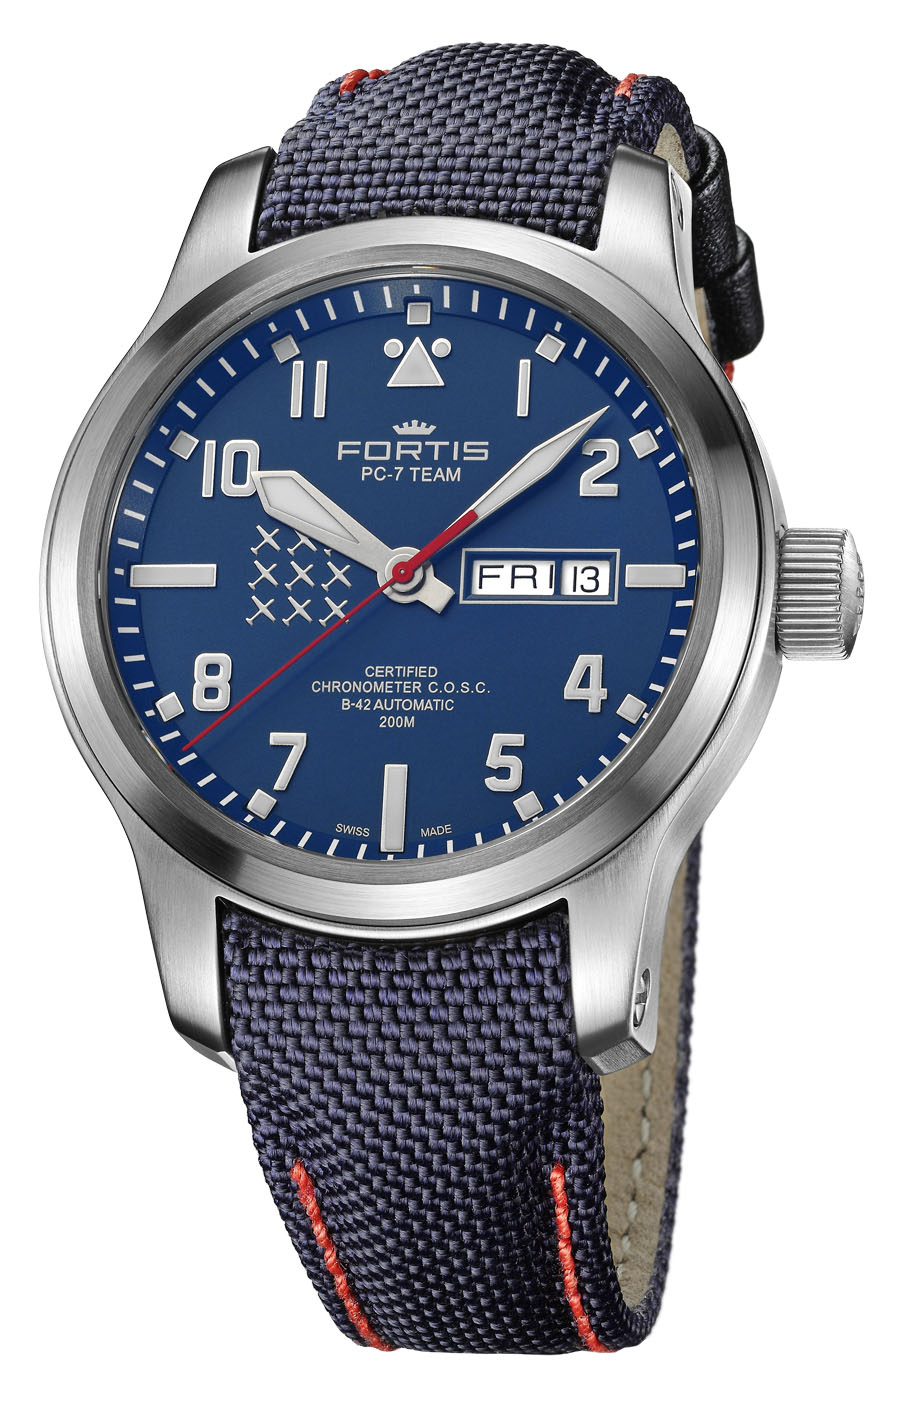 Fortis: PC-7 TEAM Day-Date Aeromaster